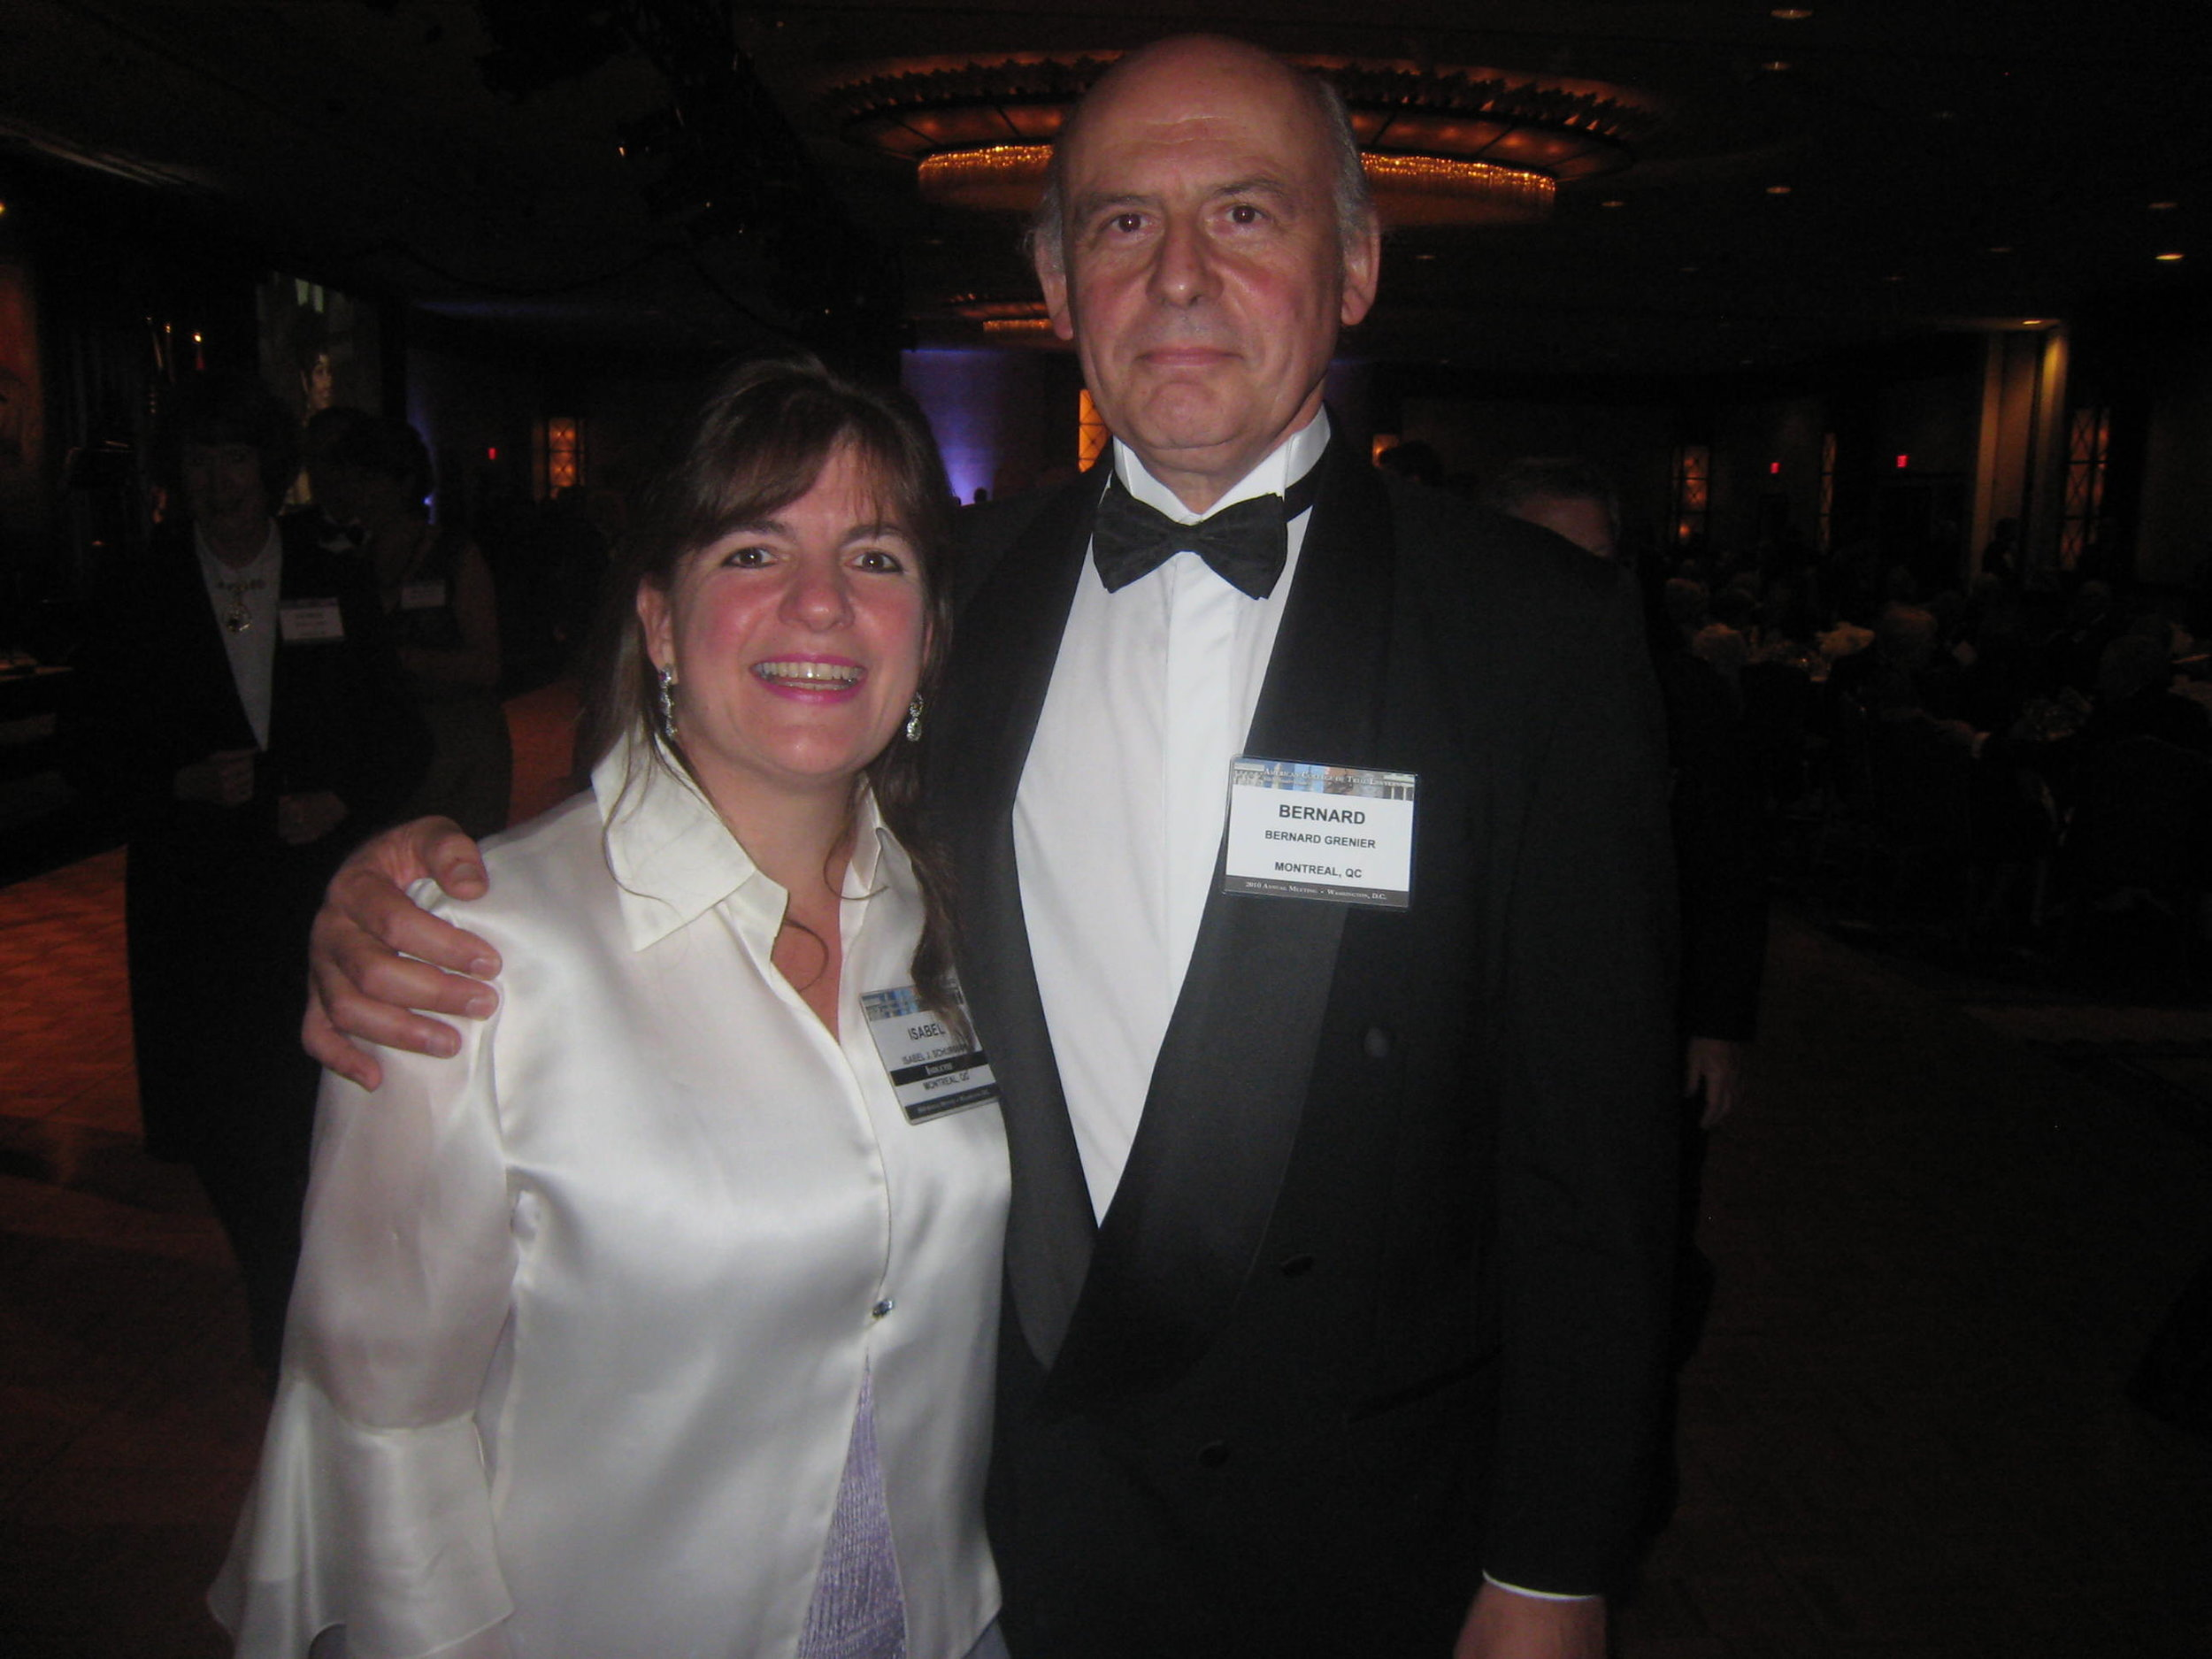 Isabel with husband Bernard at her swearing in at the American College of Trial Lawyer Conference in Washington, 2010.